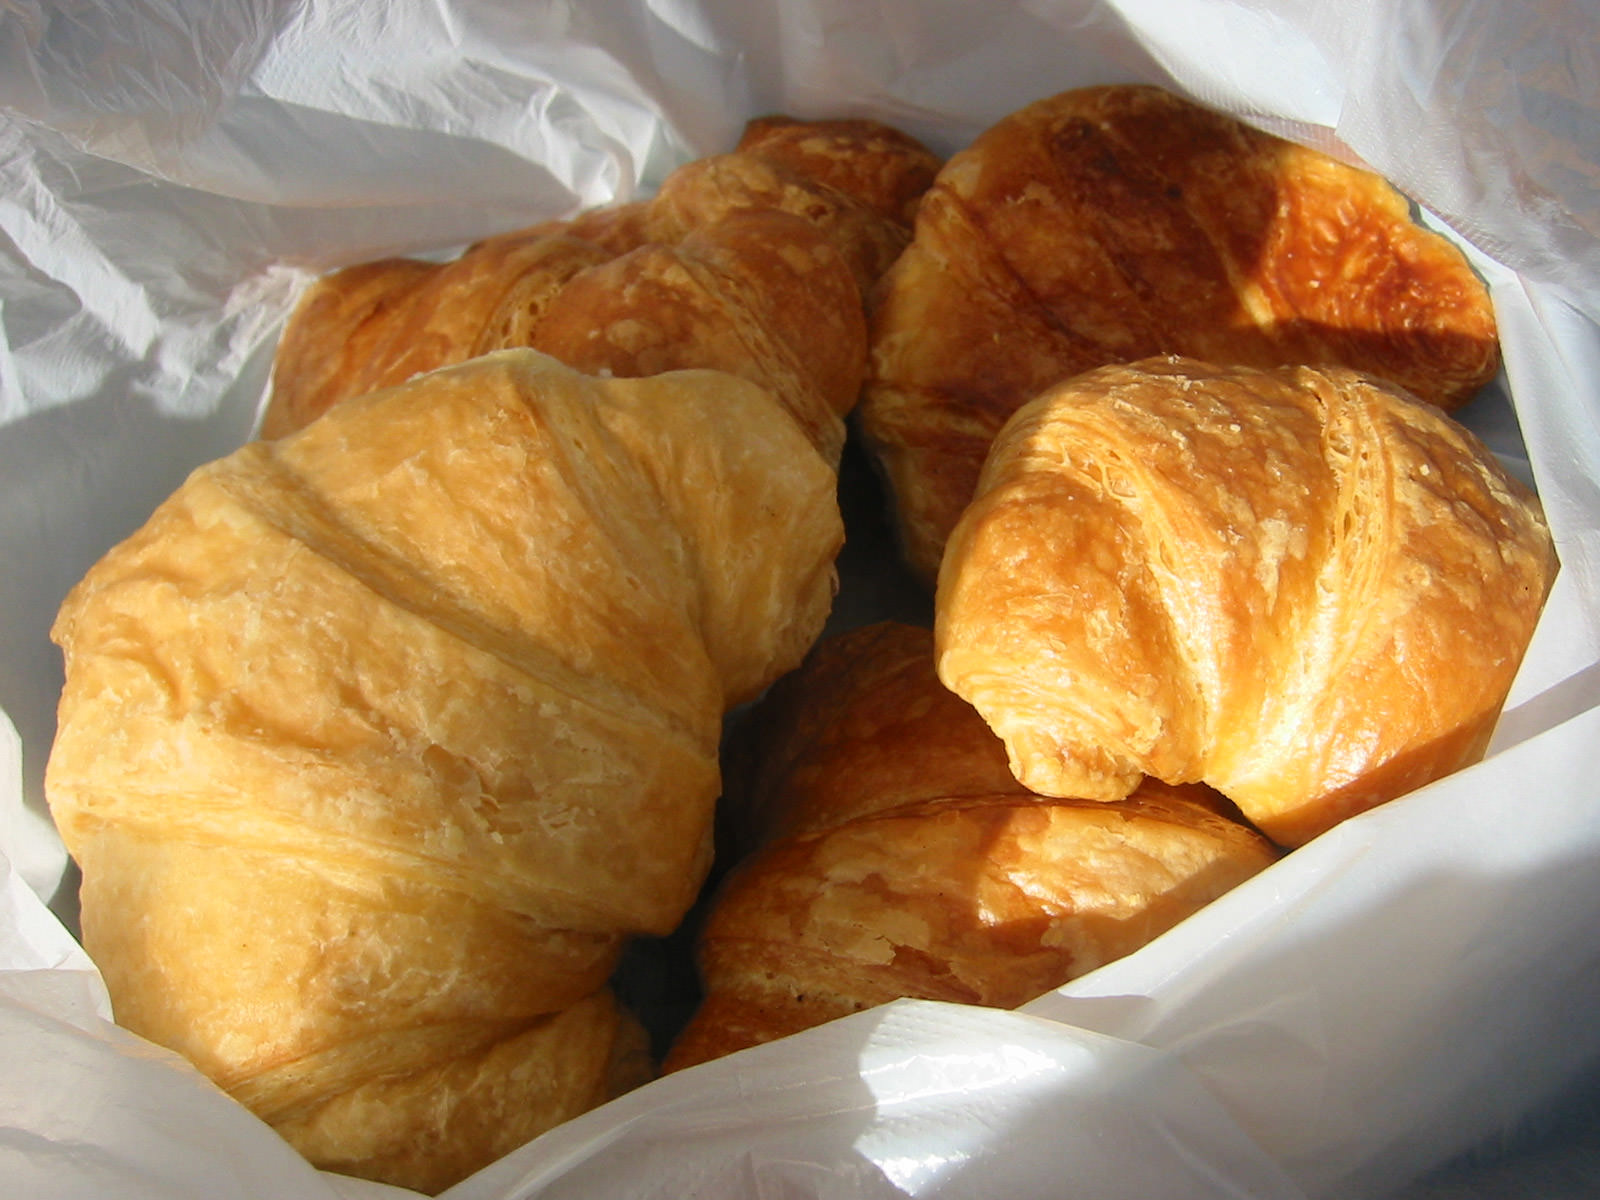 Bag of croissants